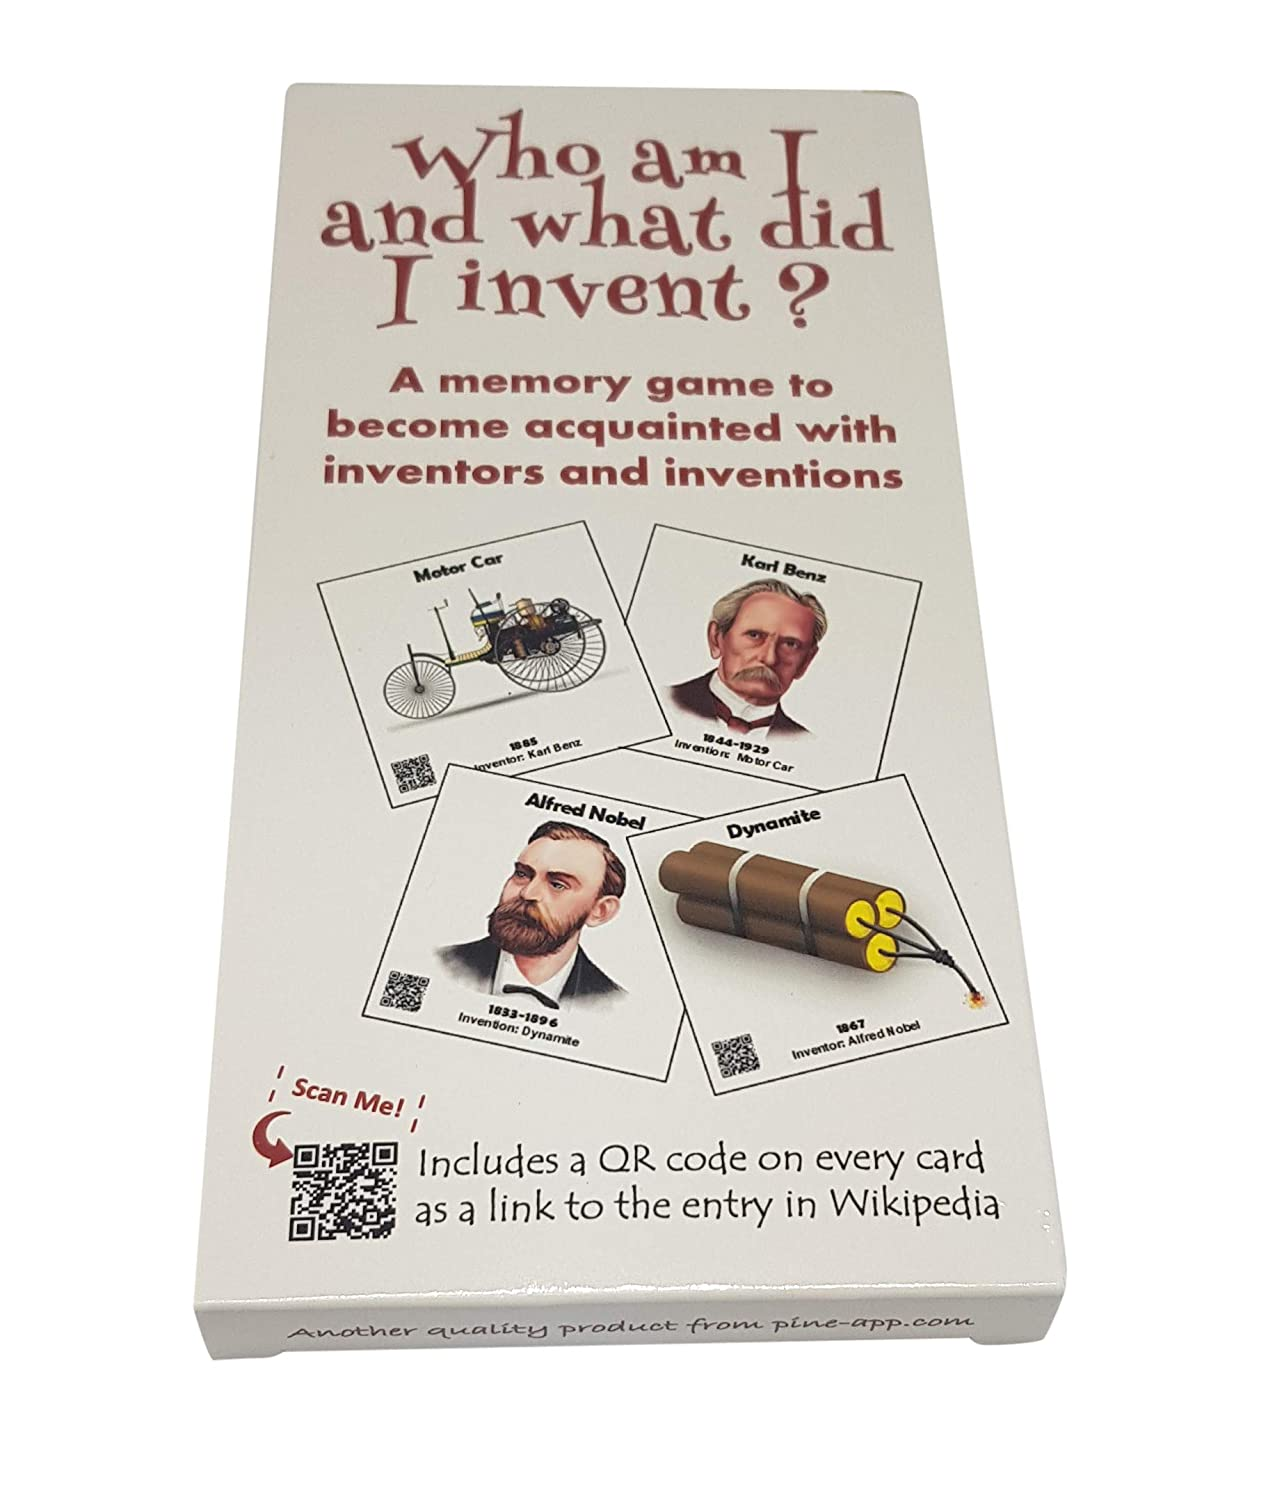 Educational Card Game New and Unique Memory Card Game for Ages 6-106 Who am I and What Did I Invent? Improve Memory and Have Fun Learning for The Whole Family Pine-app Inventions and Their Inventors